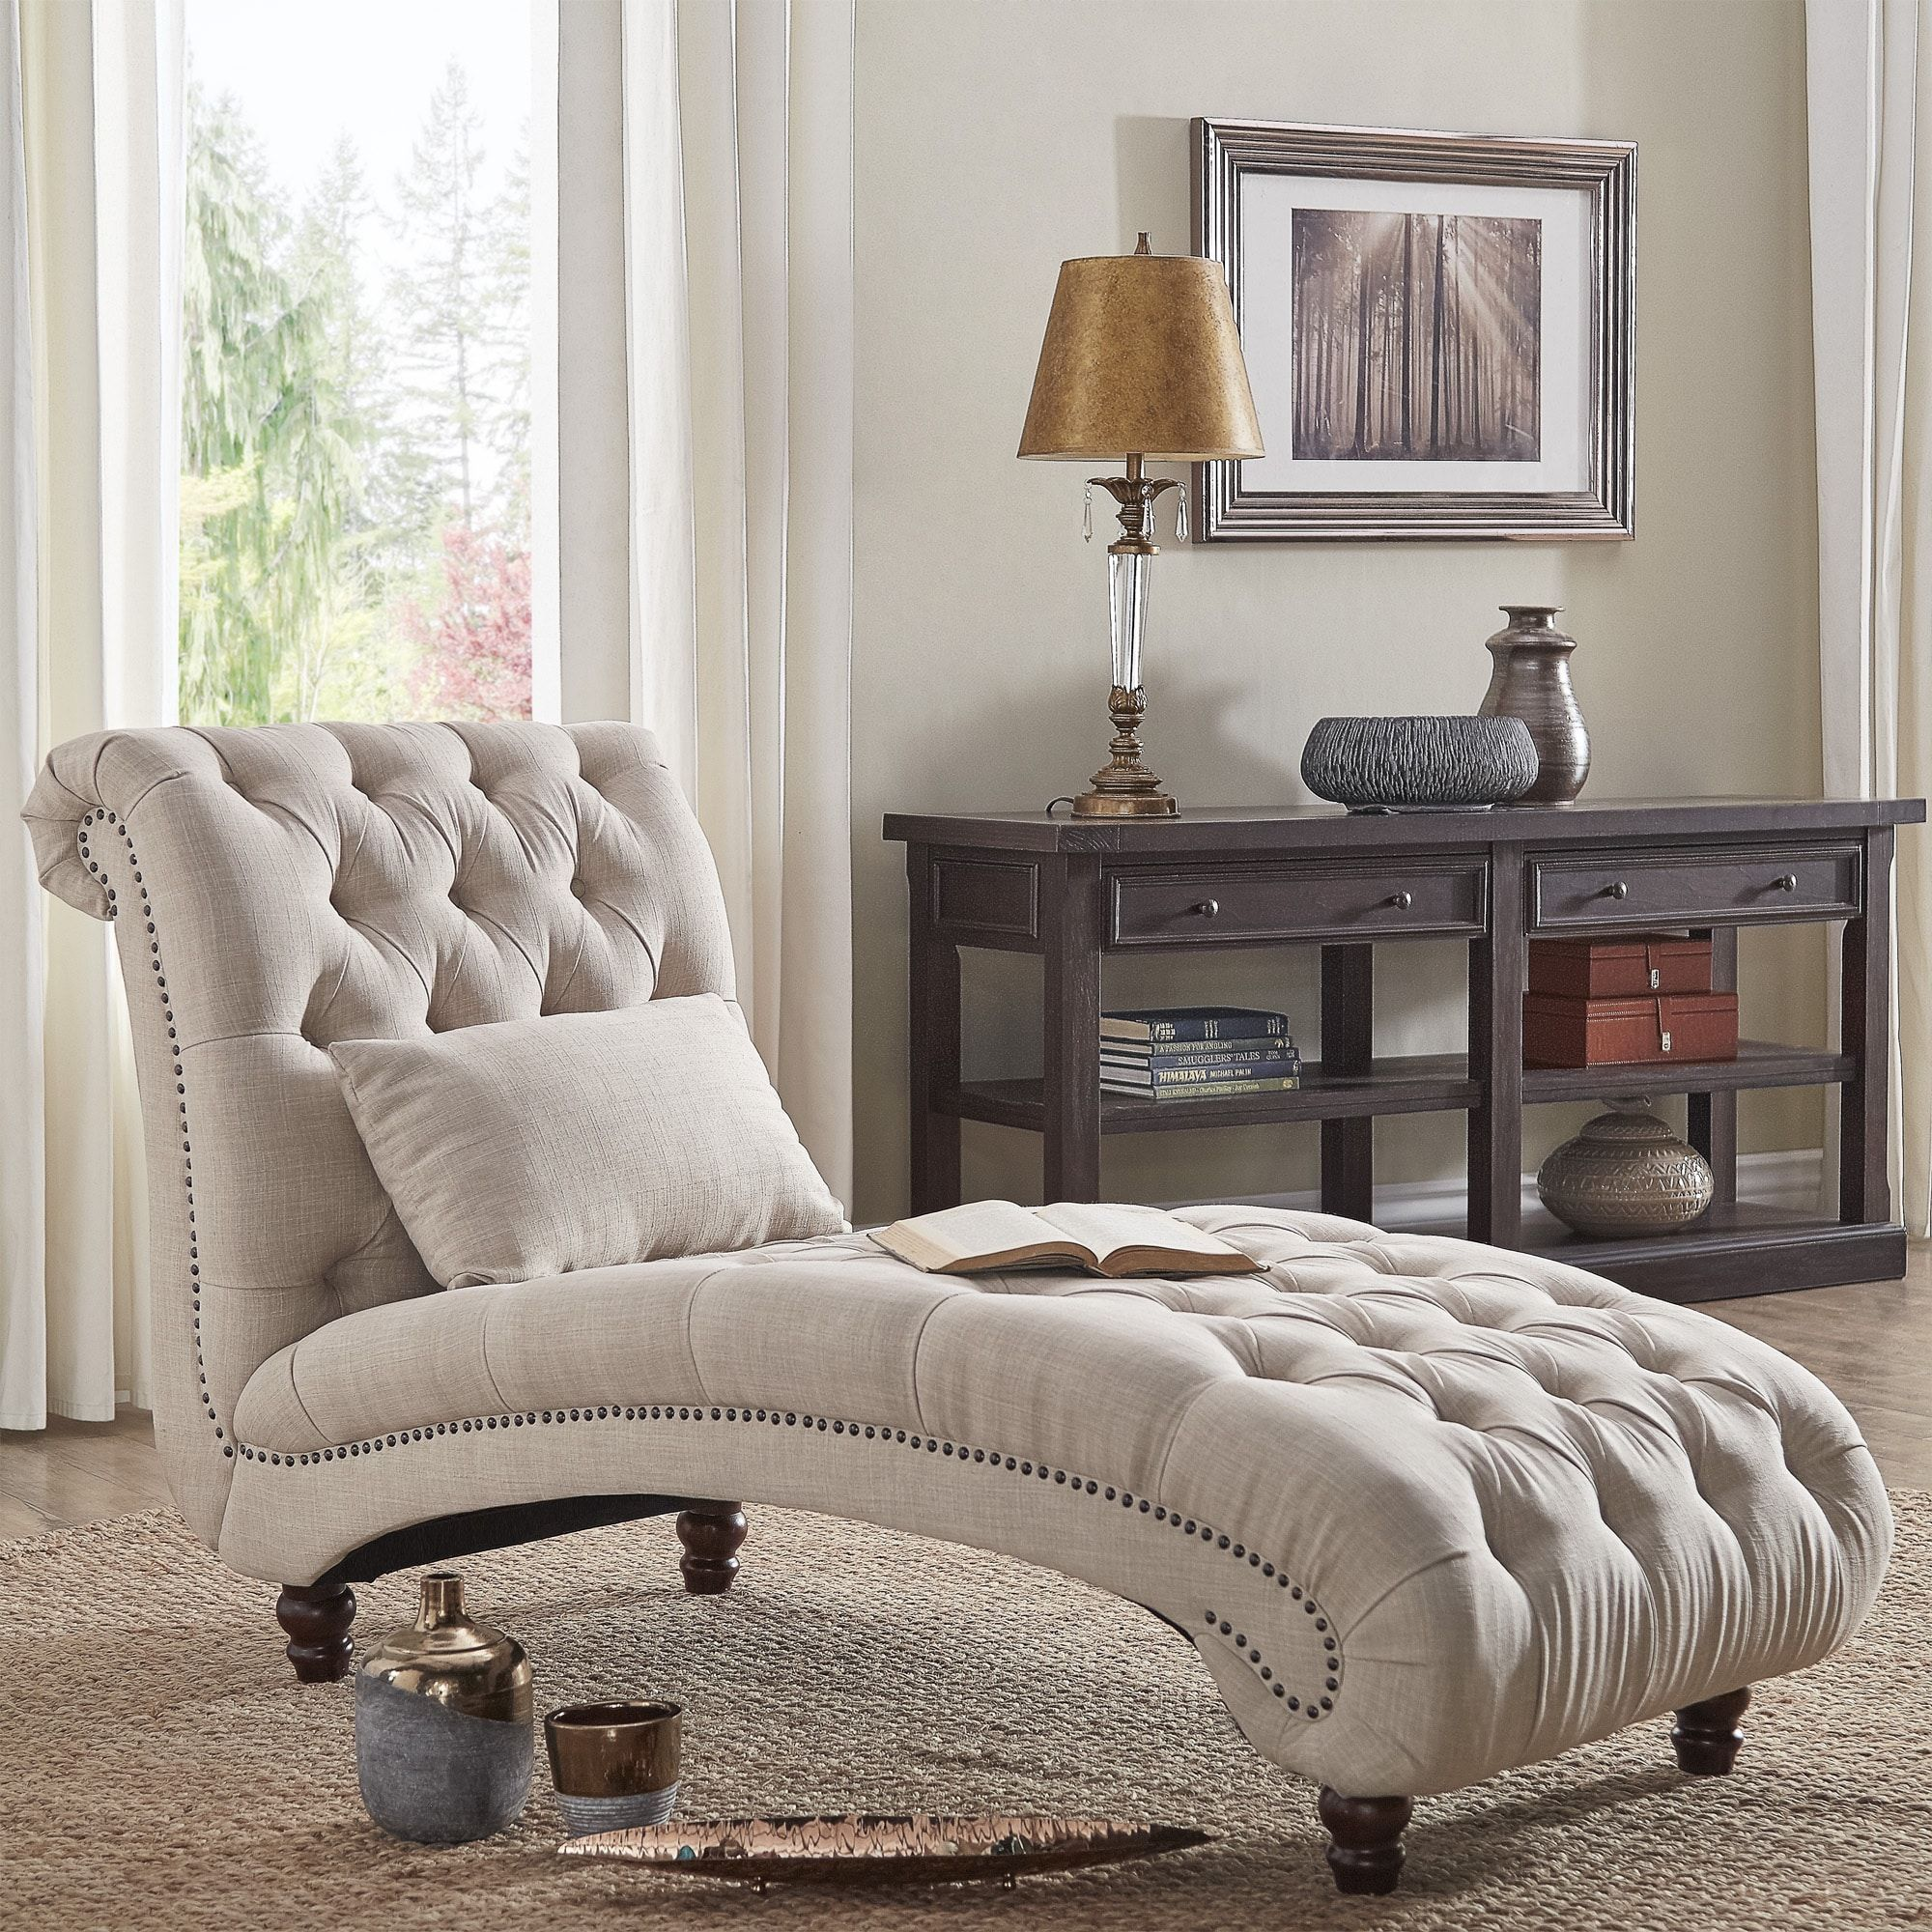 Knightsbridge Tufted Oversized Chaise Lounge by iNSPIRE Q Artisan (Beige  Linen) (Fabric)